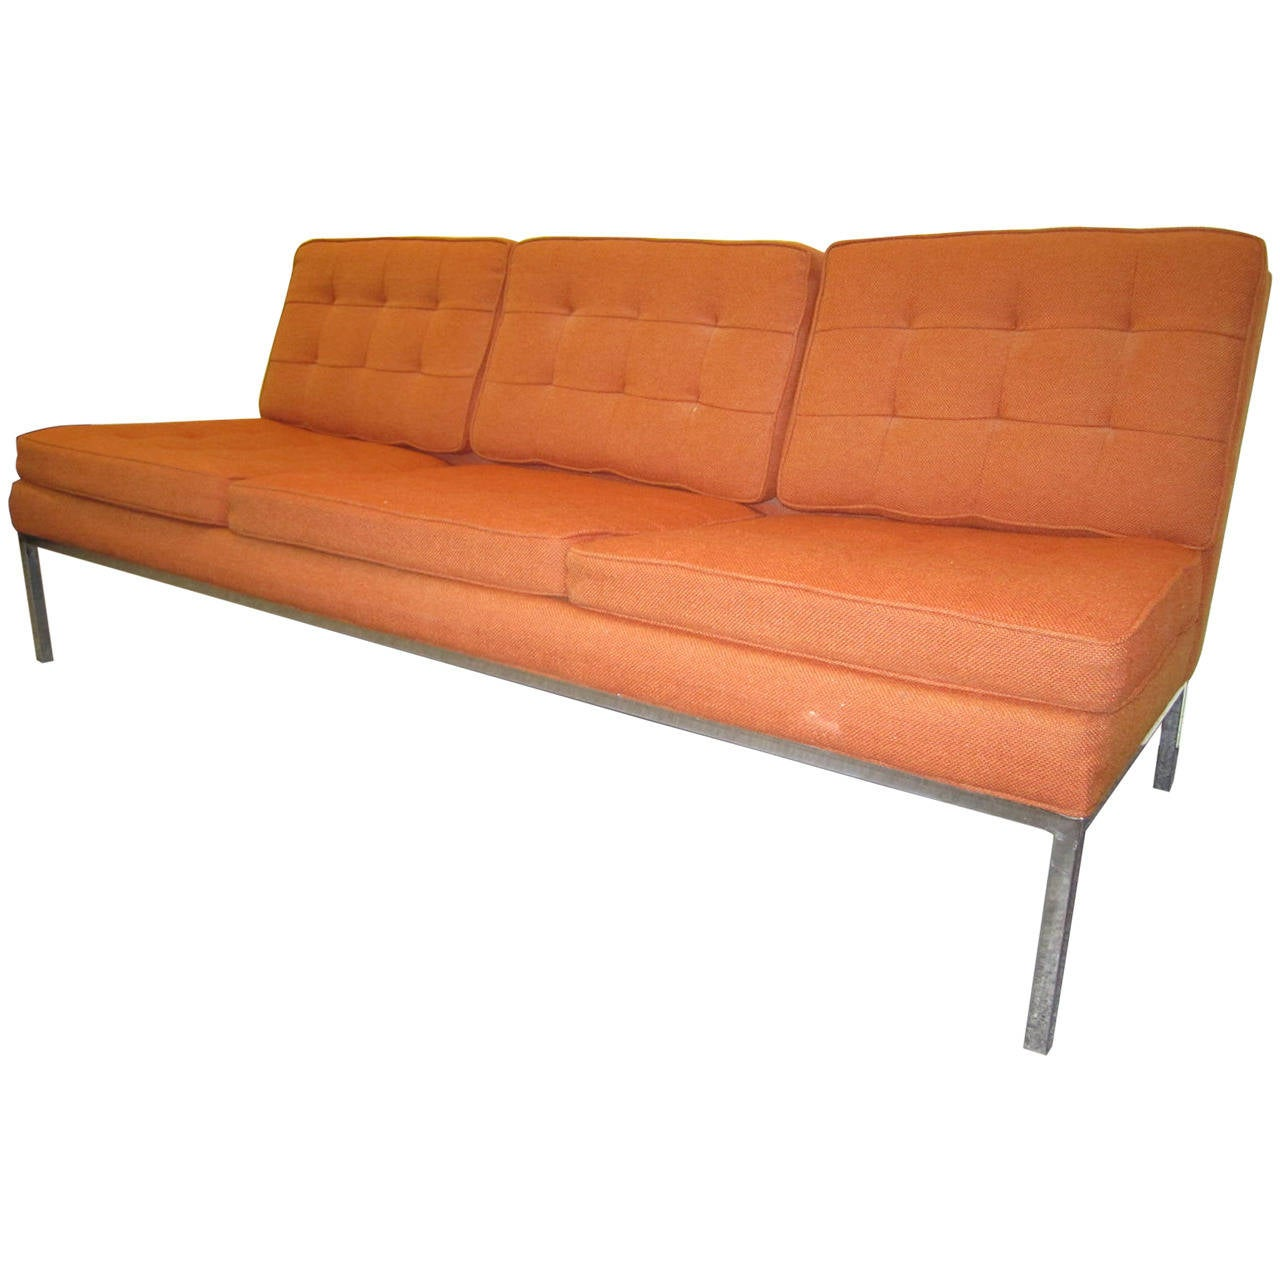 Gorgeous Milo Baughman Signed Armless Sofa Mid Century Modern For